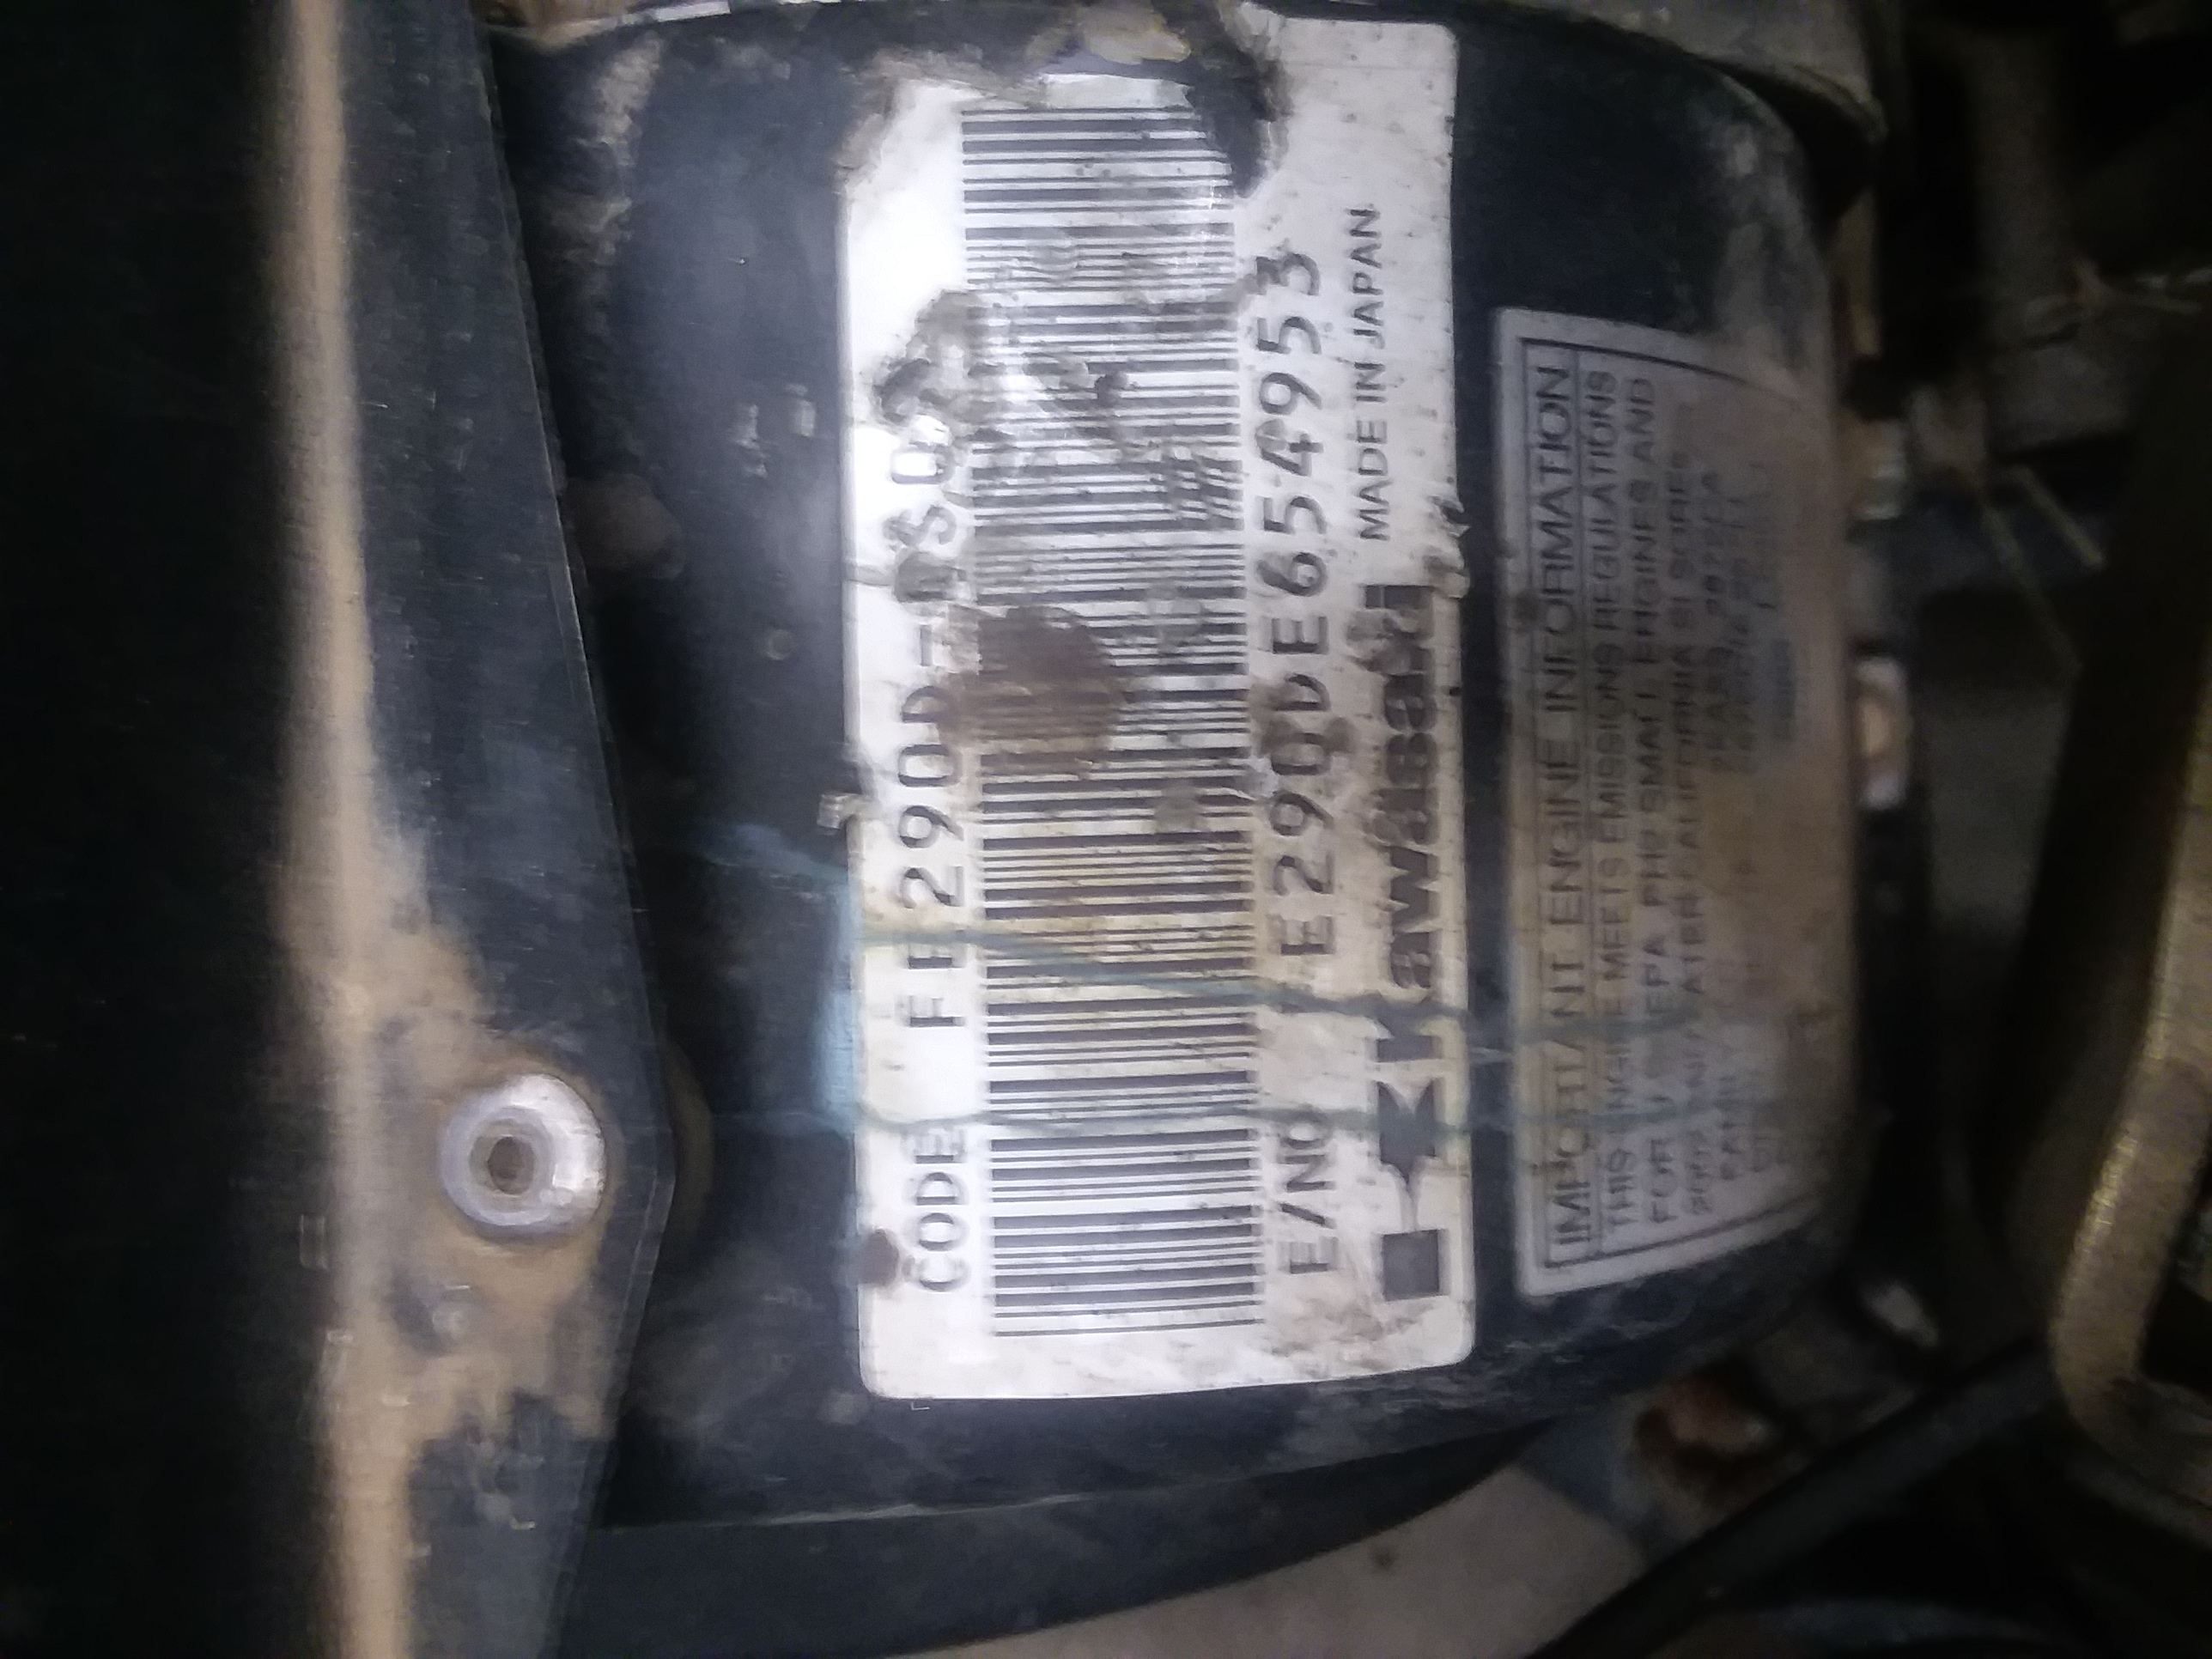 I Have A 550 Mule That Can Not Figure Out The Wiring For Kawasaki Ignition Diagram 20180208 184116